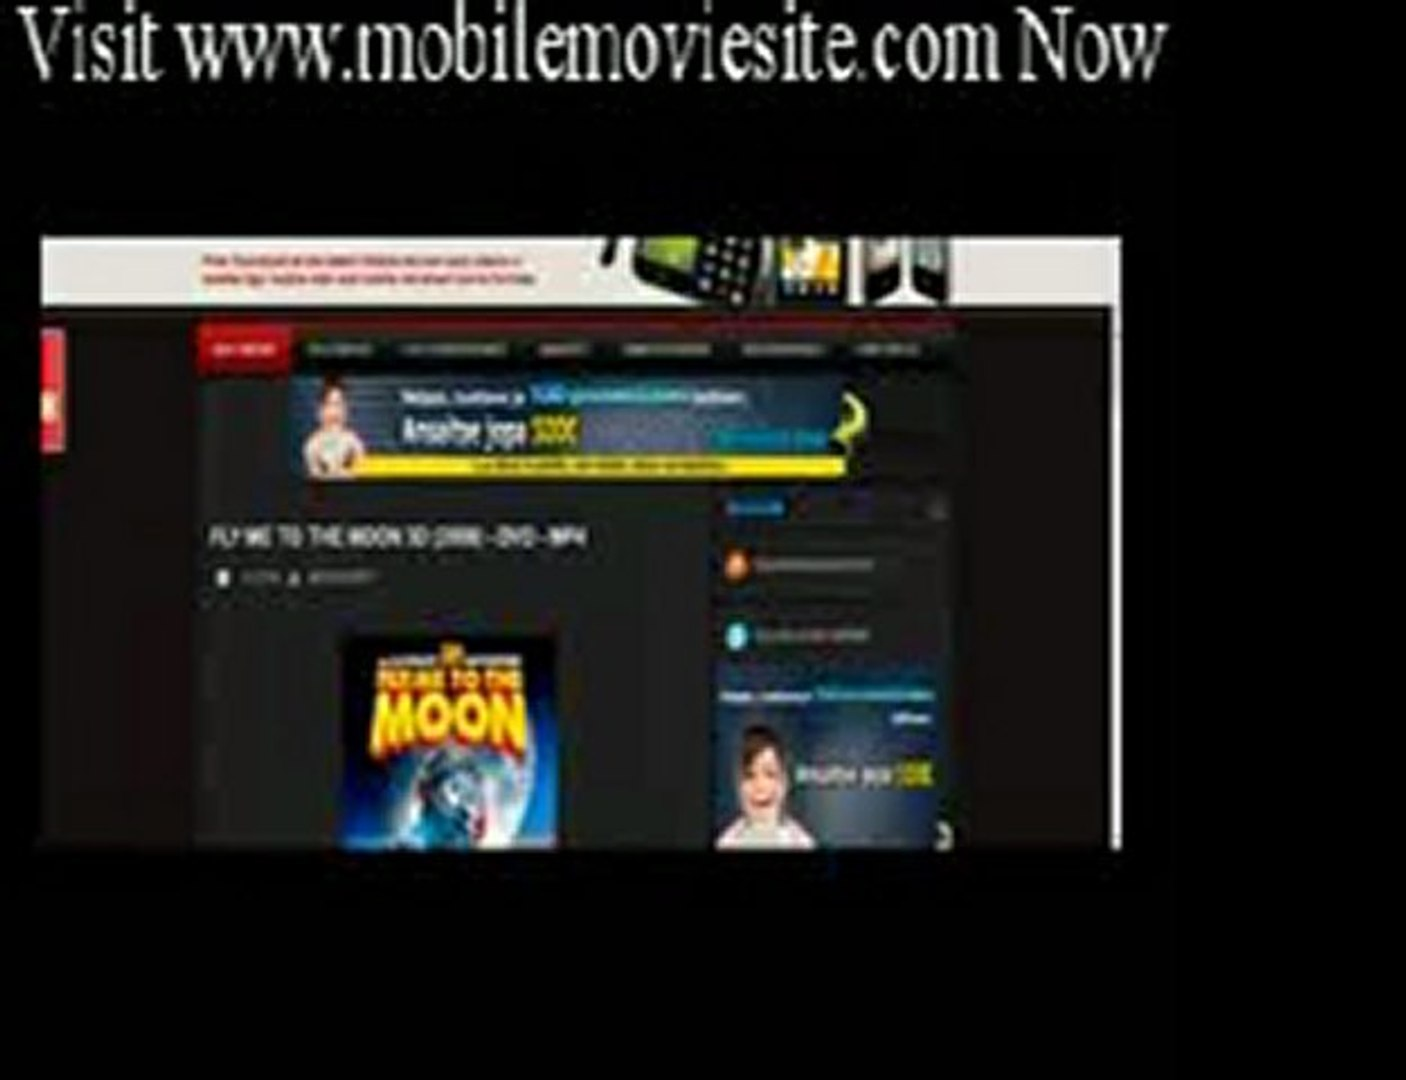 How to download free mobile movies (Avi_ 3gp_ Mp4) -www.mobilemoviesite.com